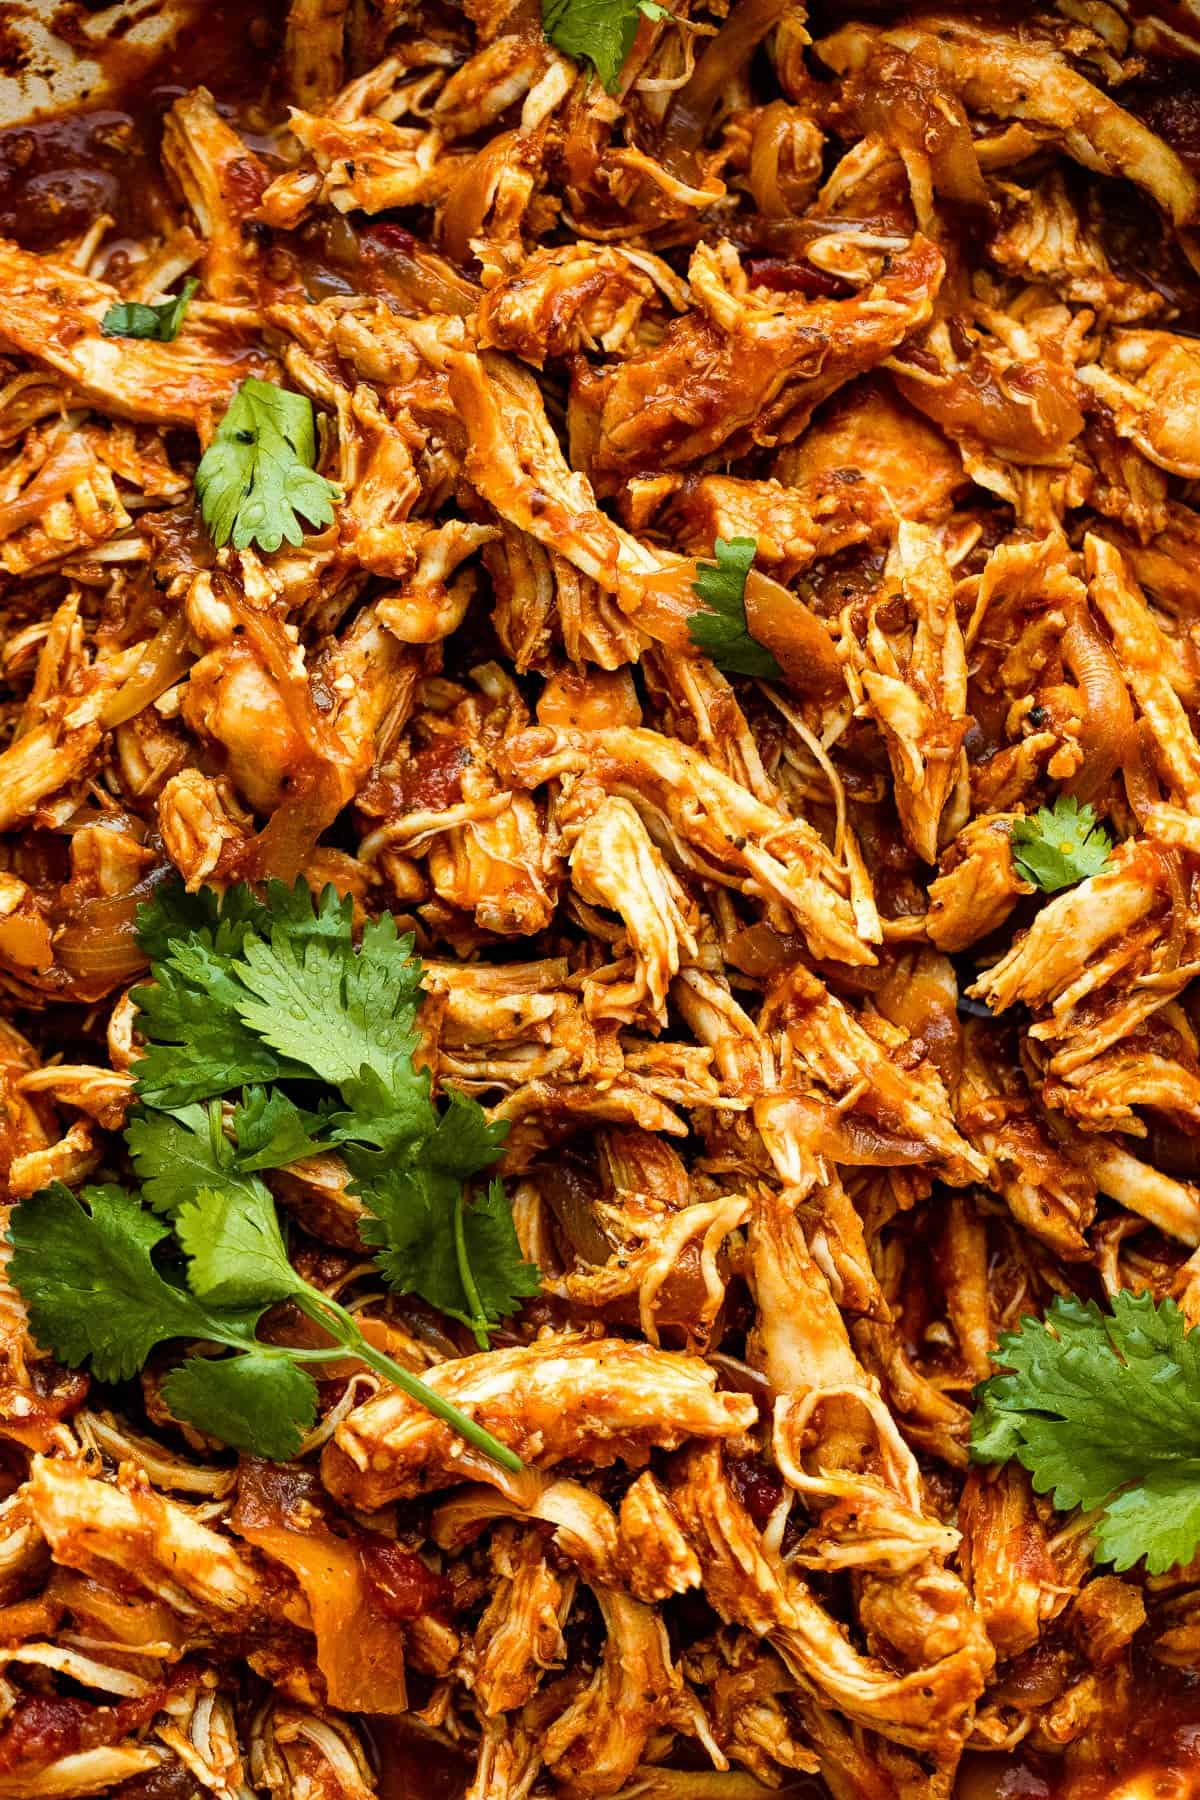 up close photo of shredded chicken for Mexican tinga